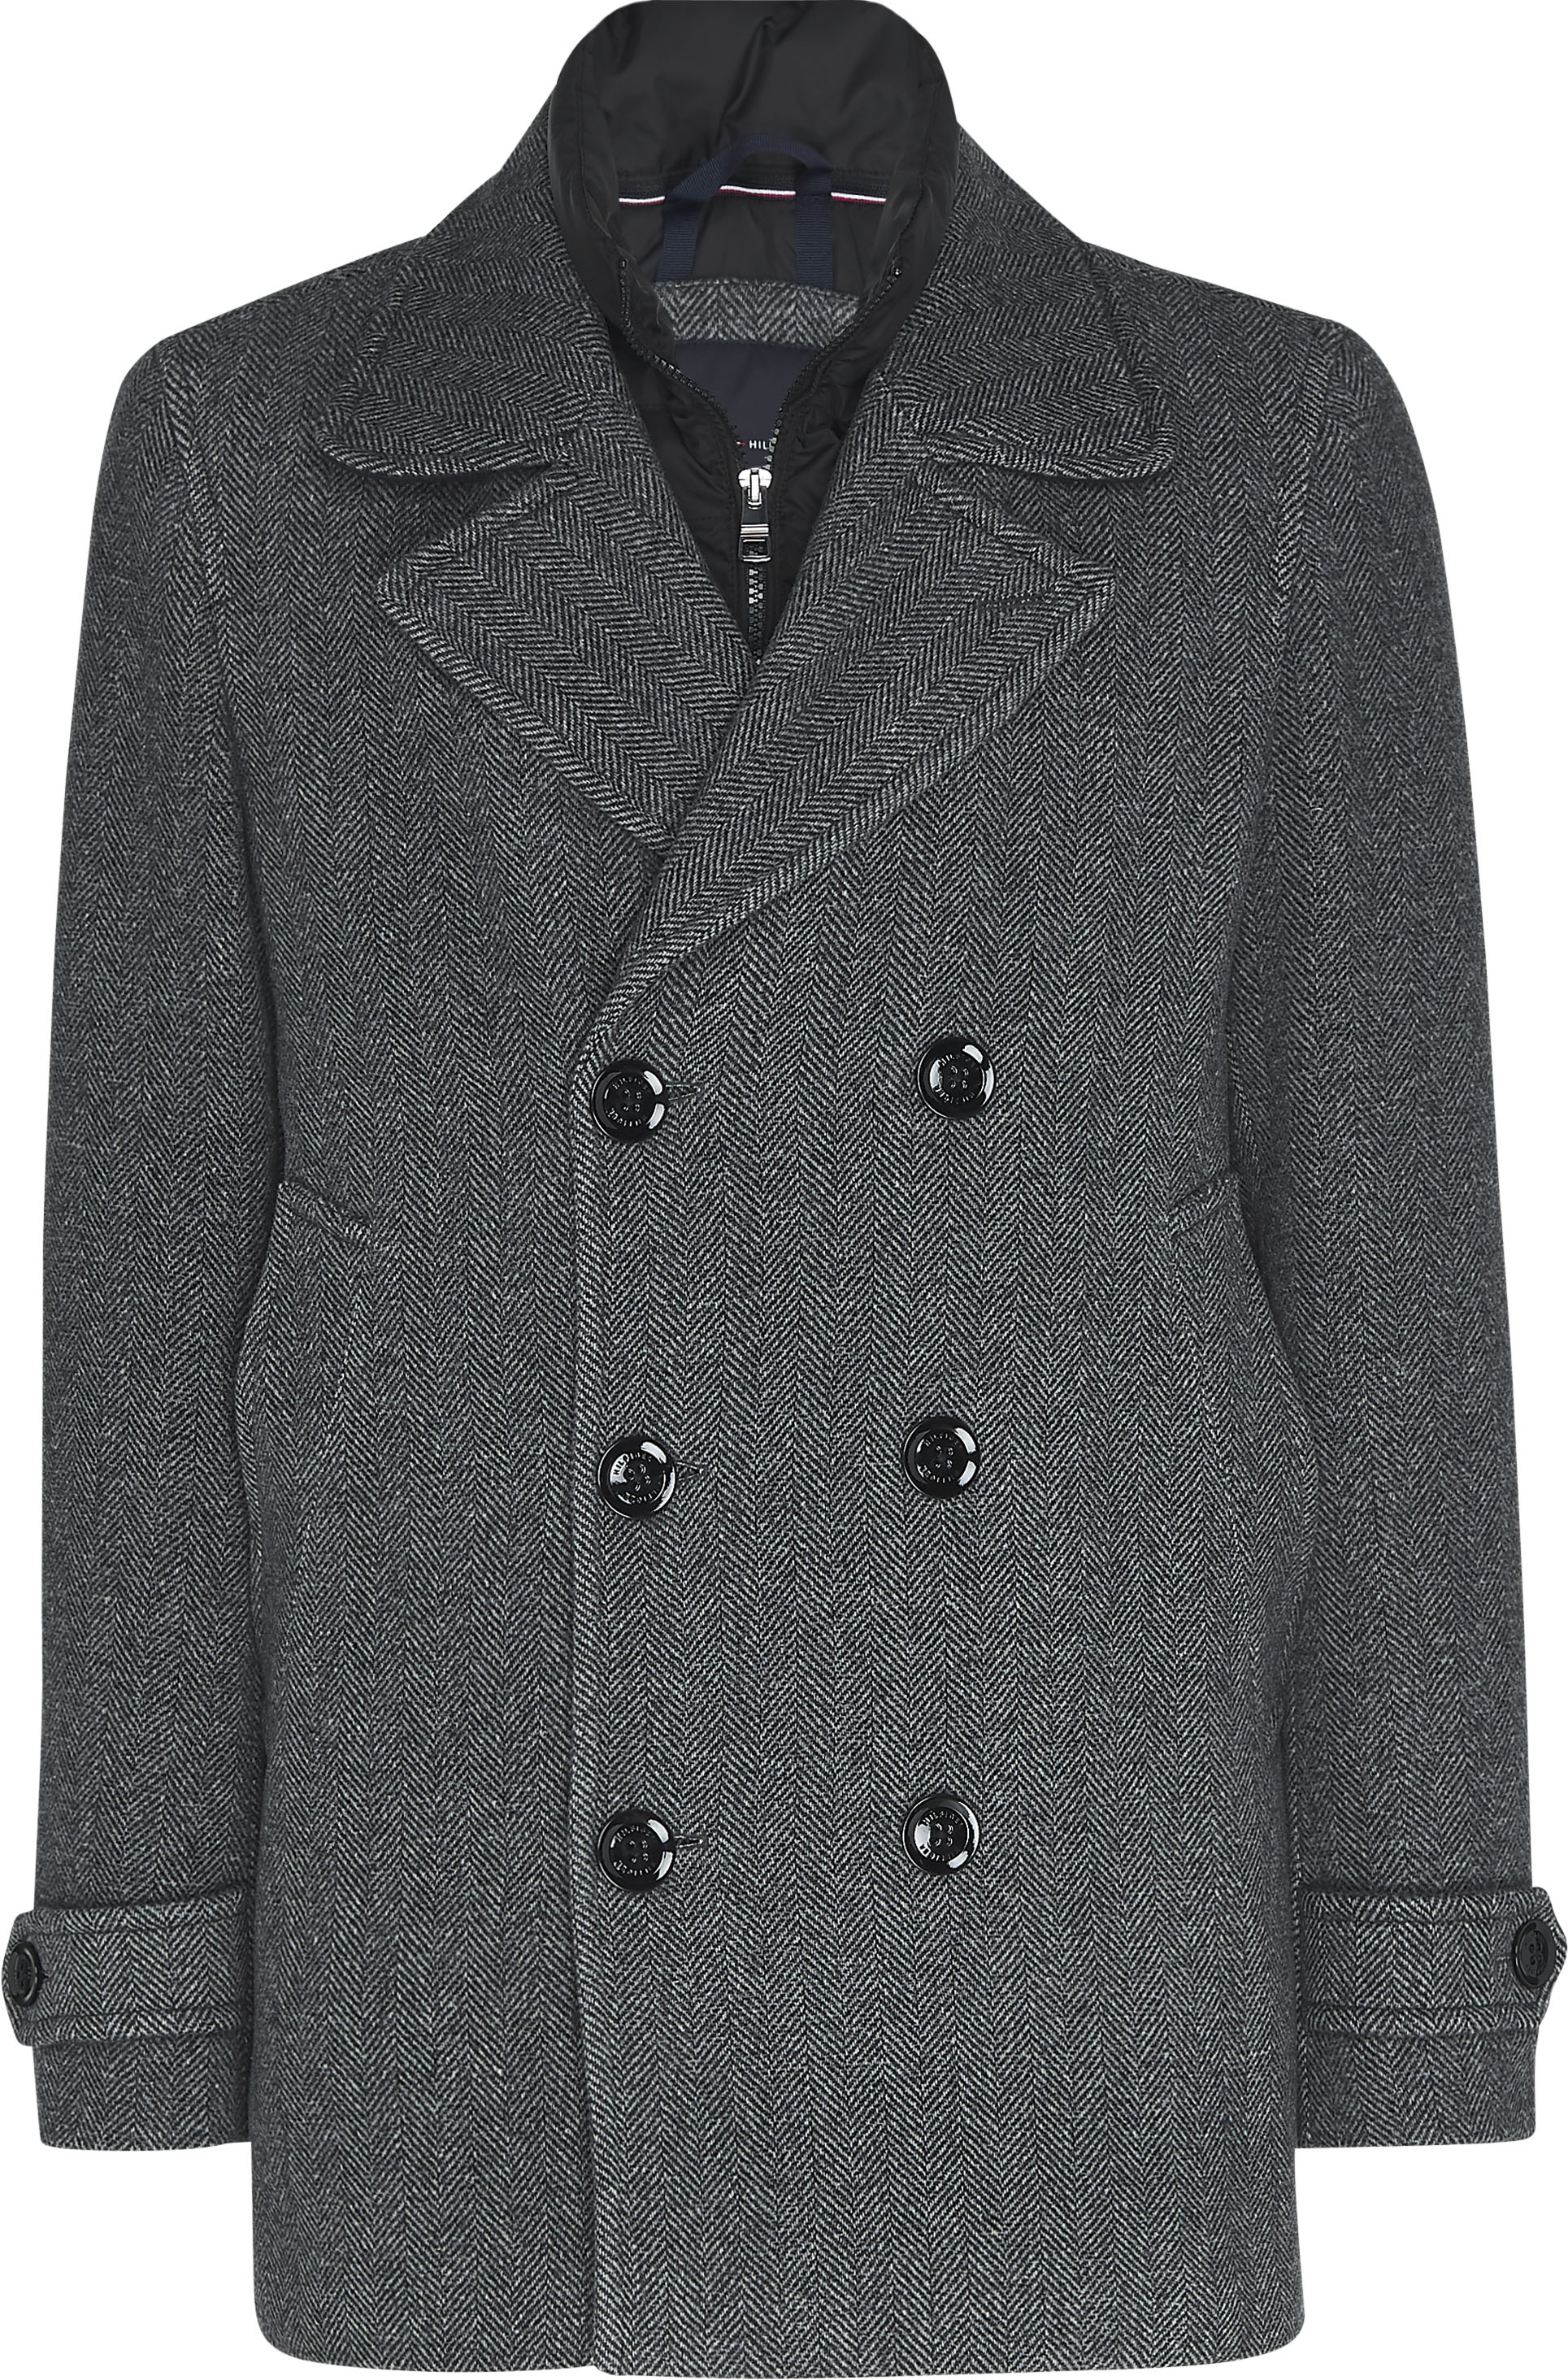 tommy hilfiger -  Wollmantel PADDED PEACOAT